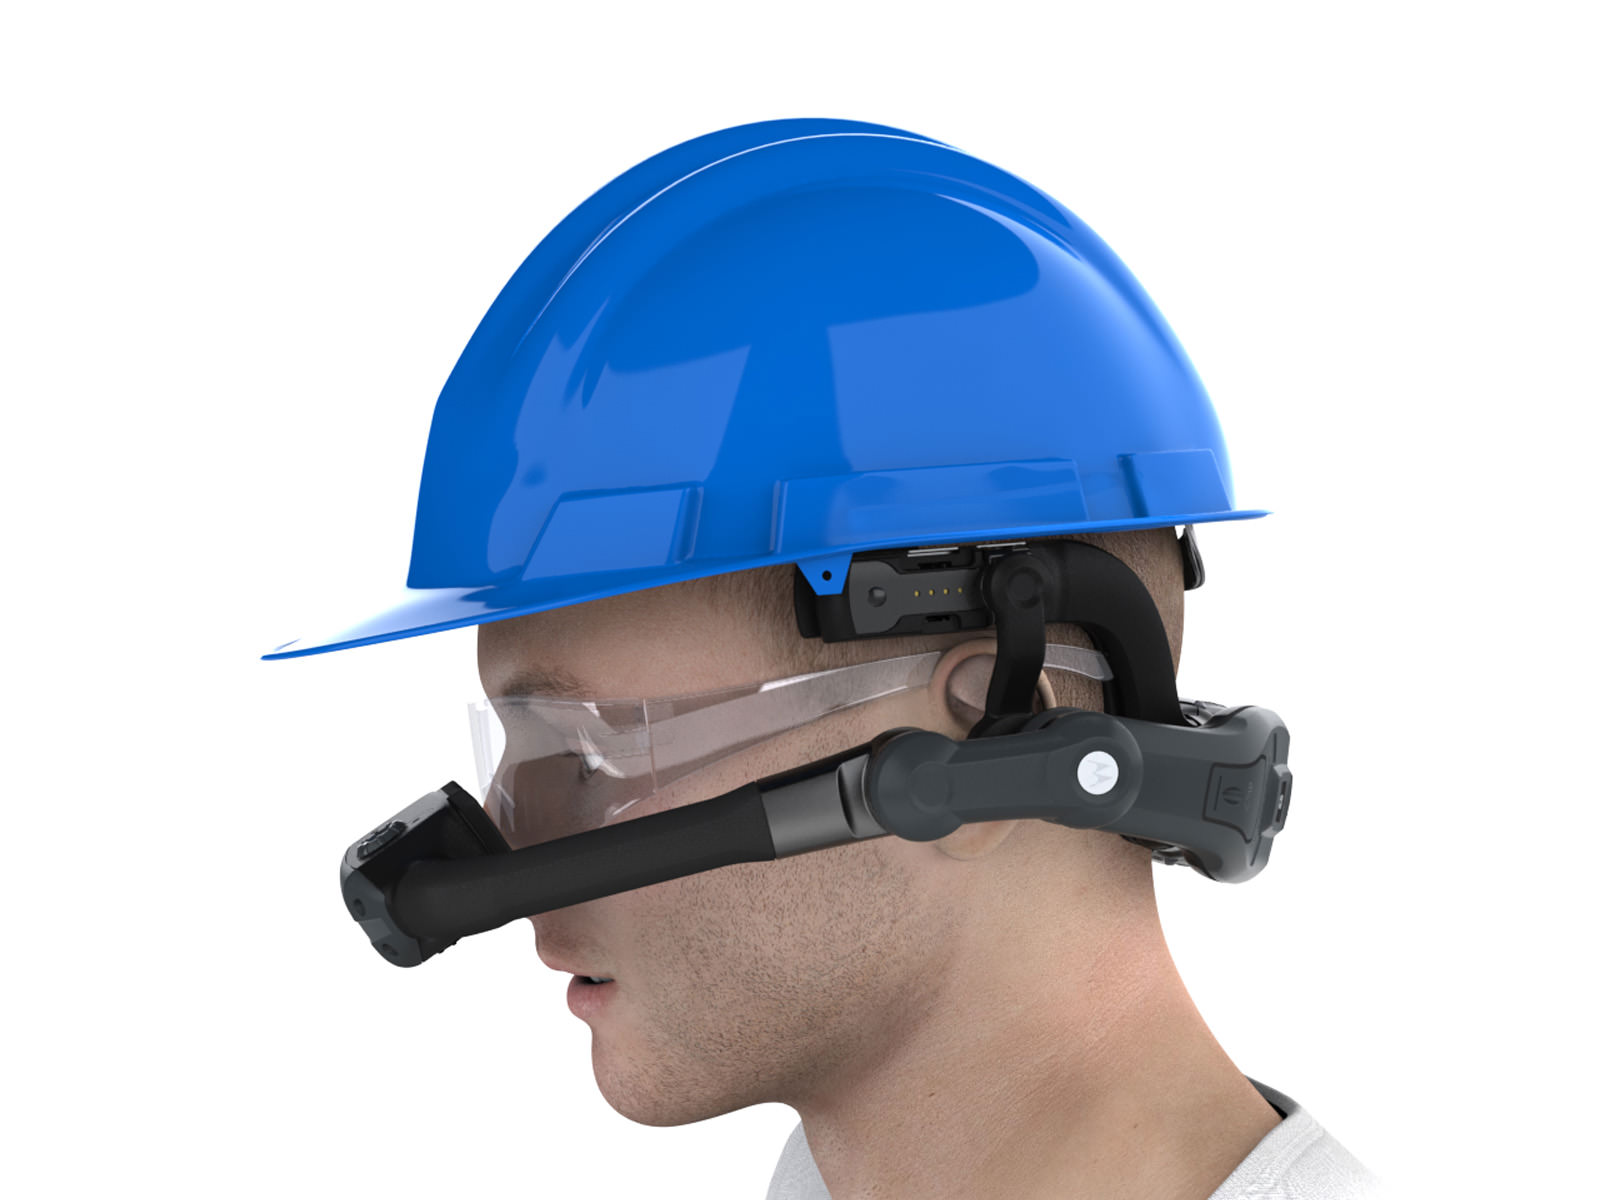 Hardhat wearing HC1 user from a side view